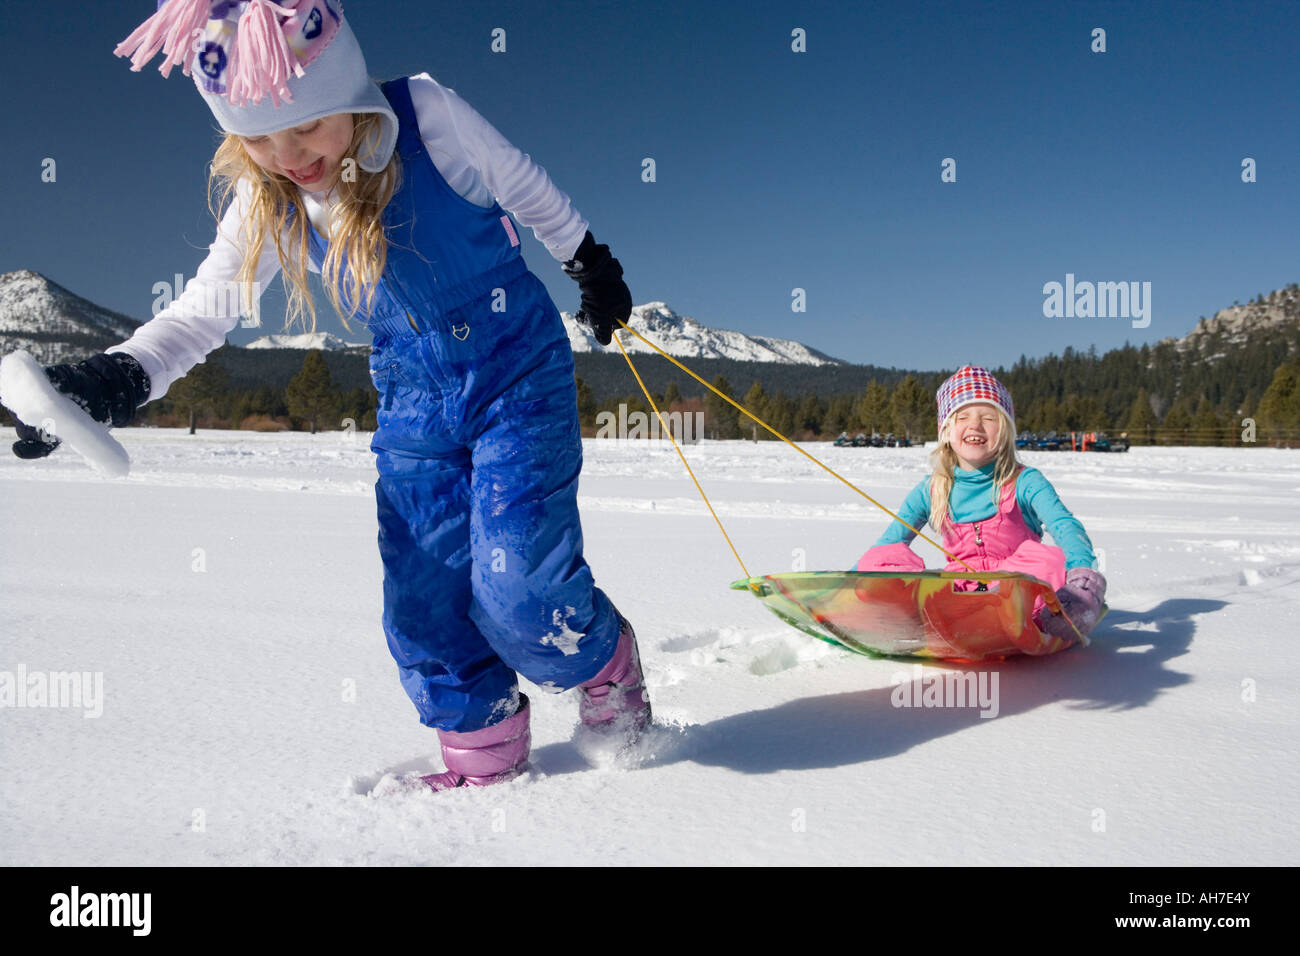 Girl pulling her sister on a sled - Stock Image